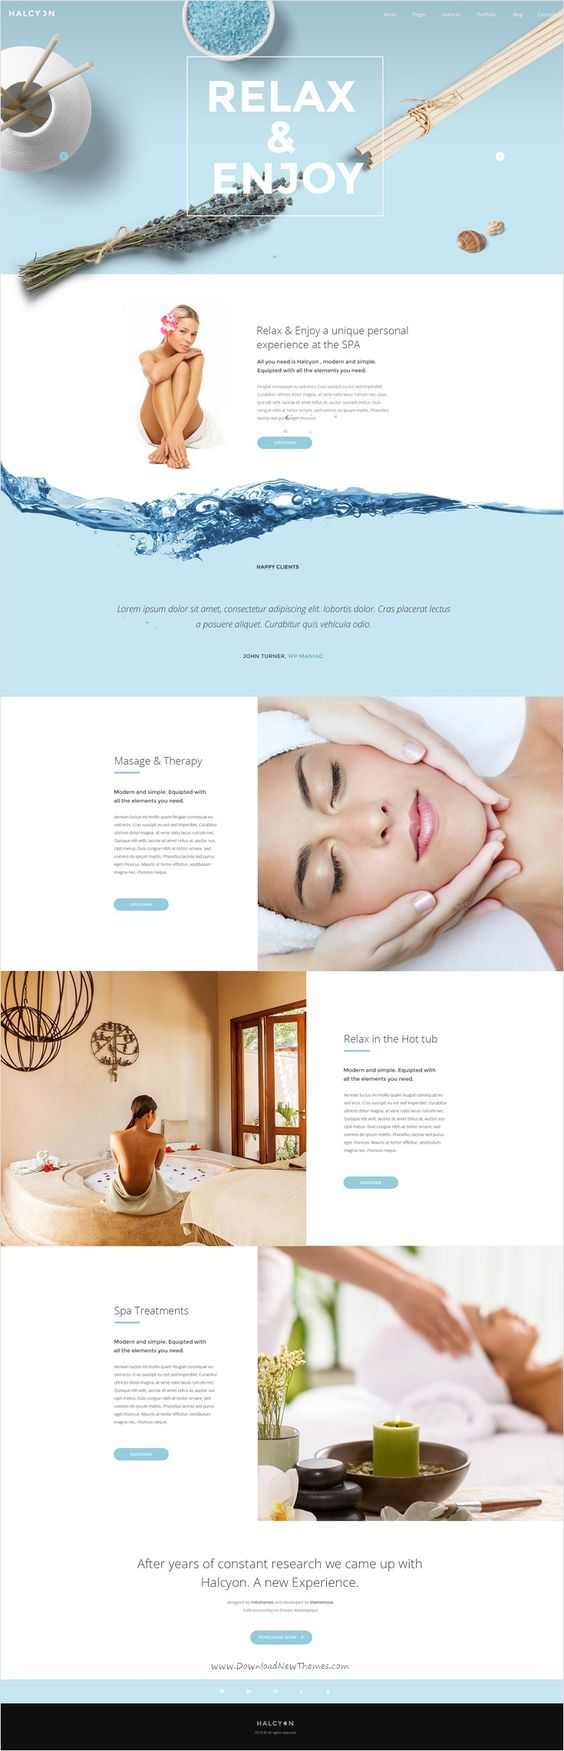 Website Design &#038; Brand inspiration<br> for Beauty &#038; Hair